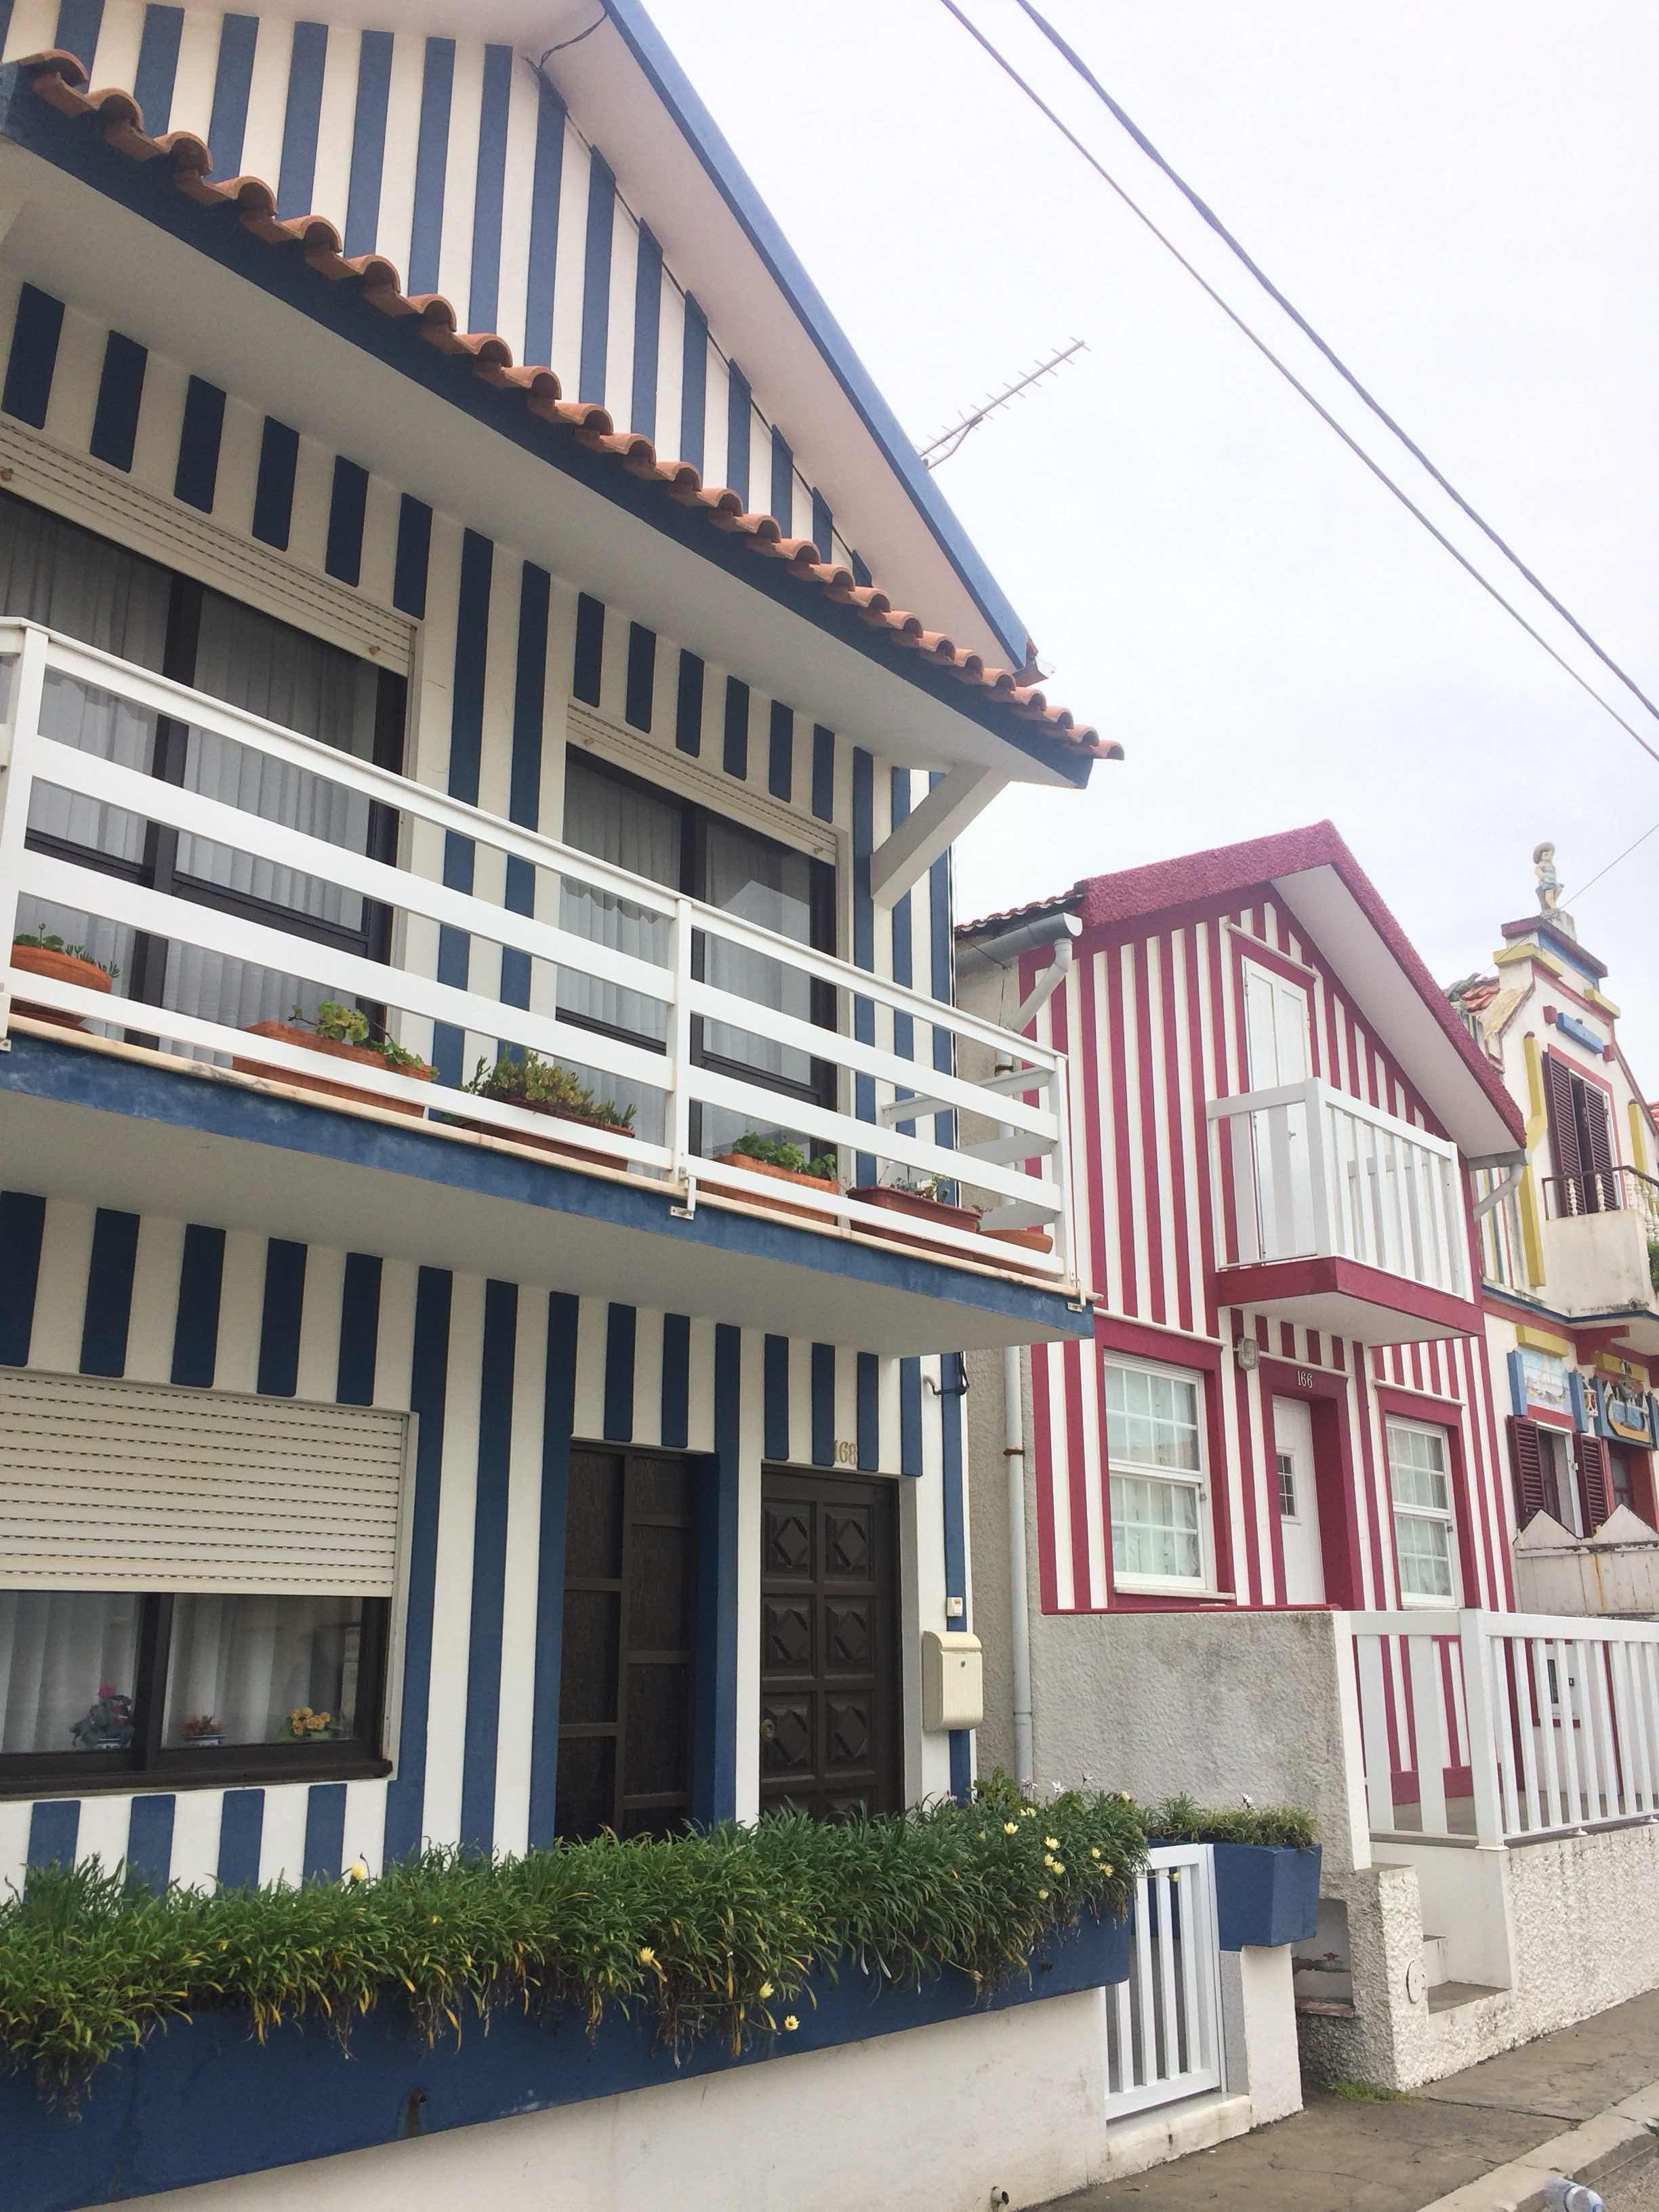 Striped houses in Costa Nova. The effect in town was sometimes by tiles, sometimes paint.